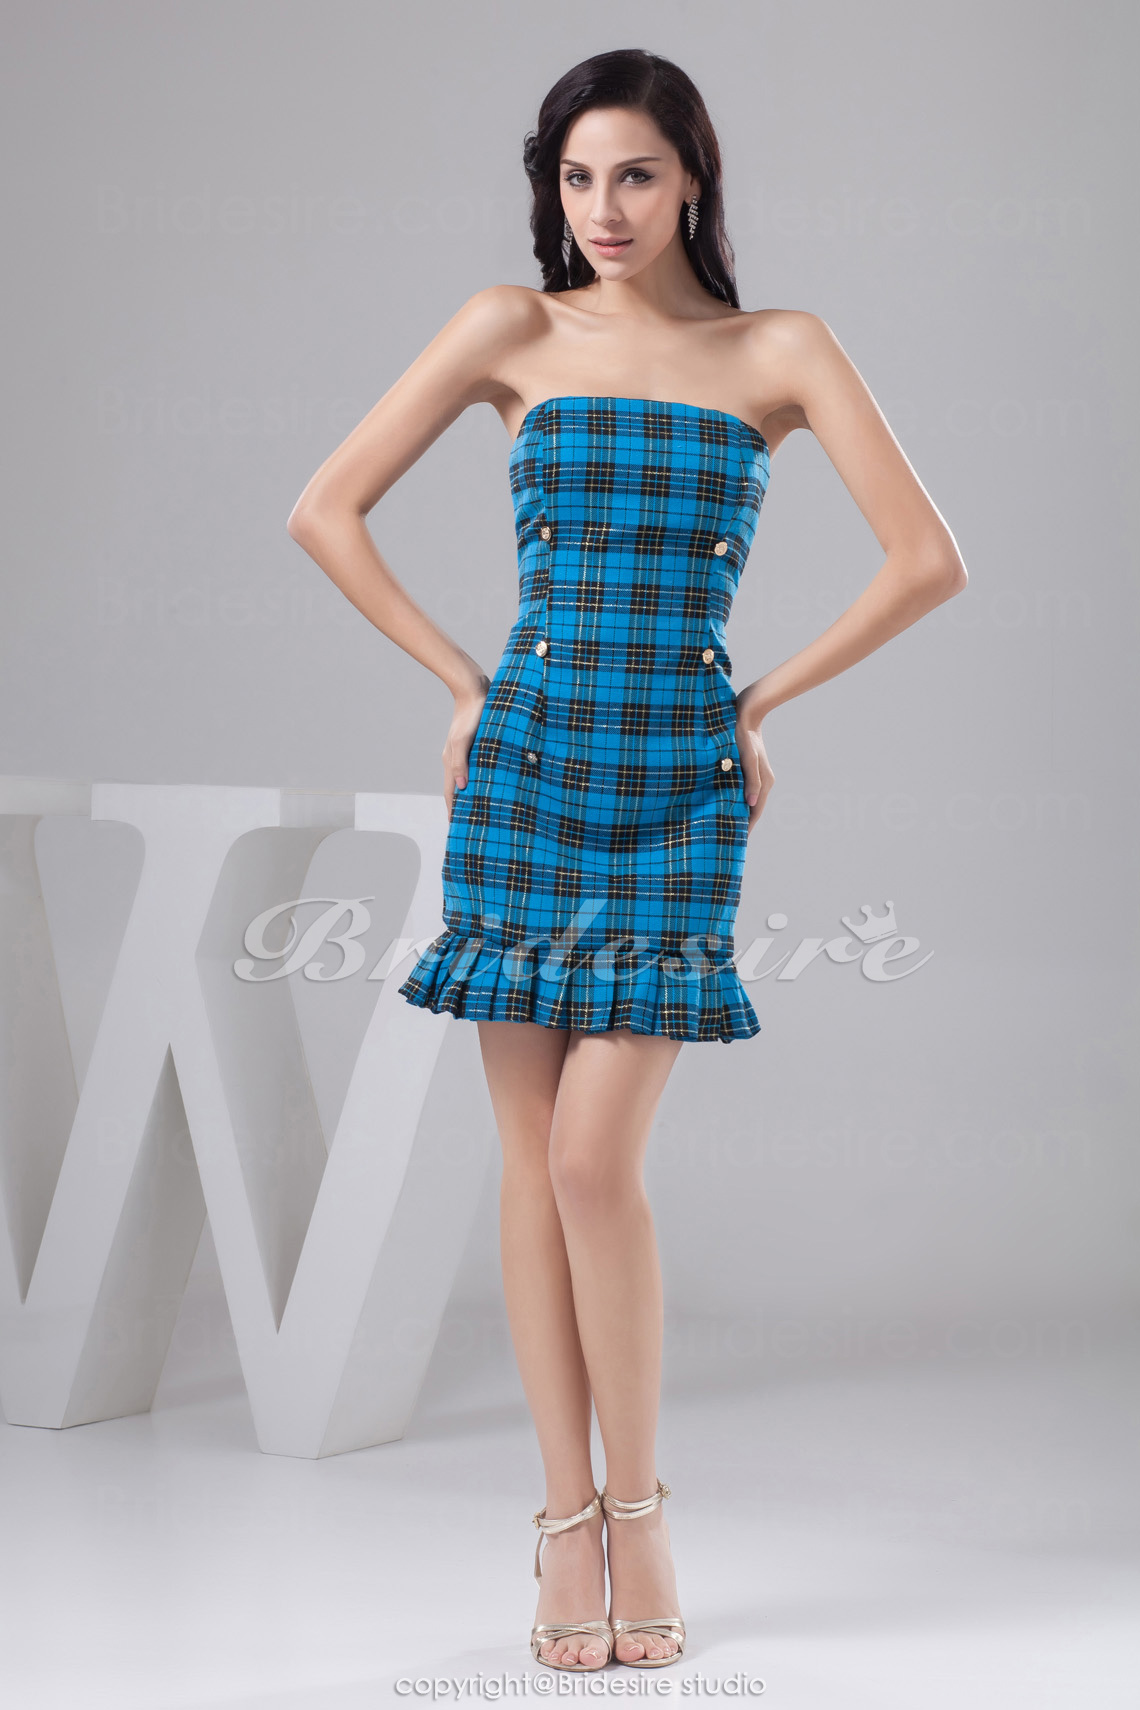 Sheath/Column Strapless Short/Mini Sleeveless Taffeta Dress